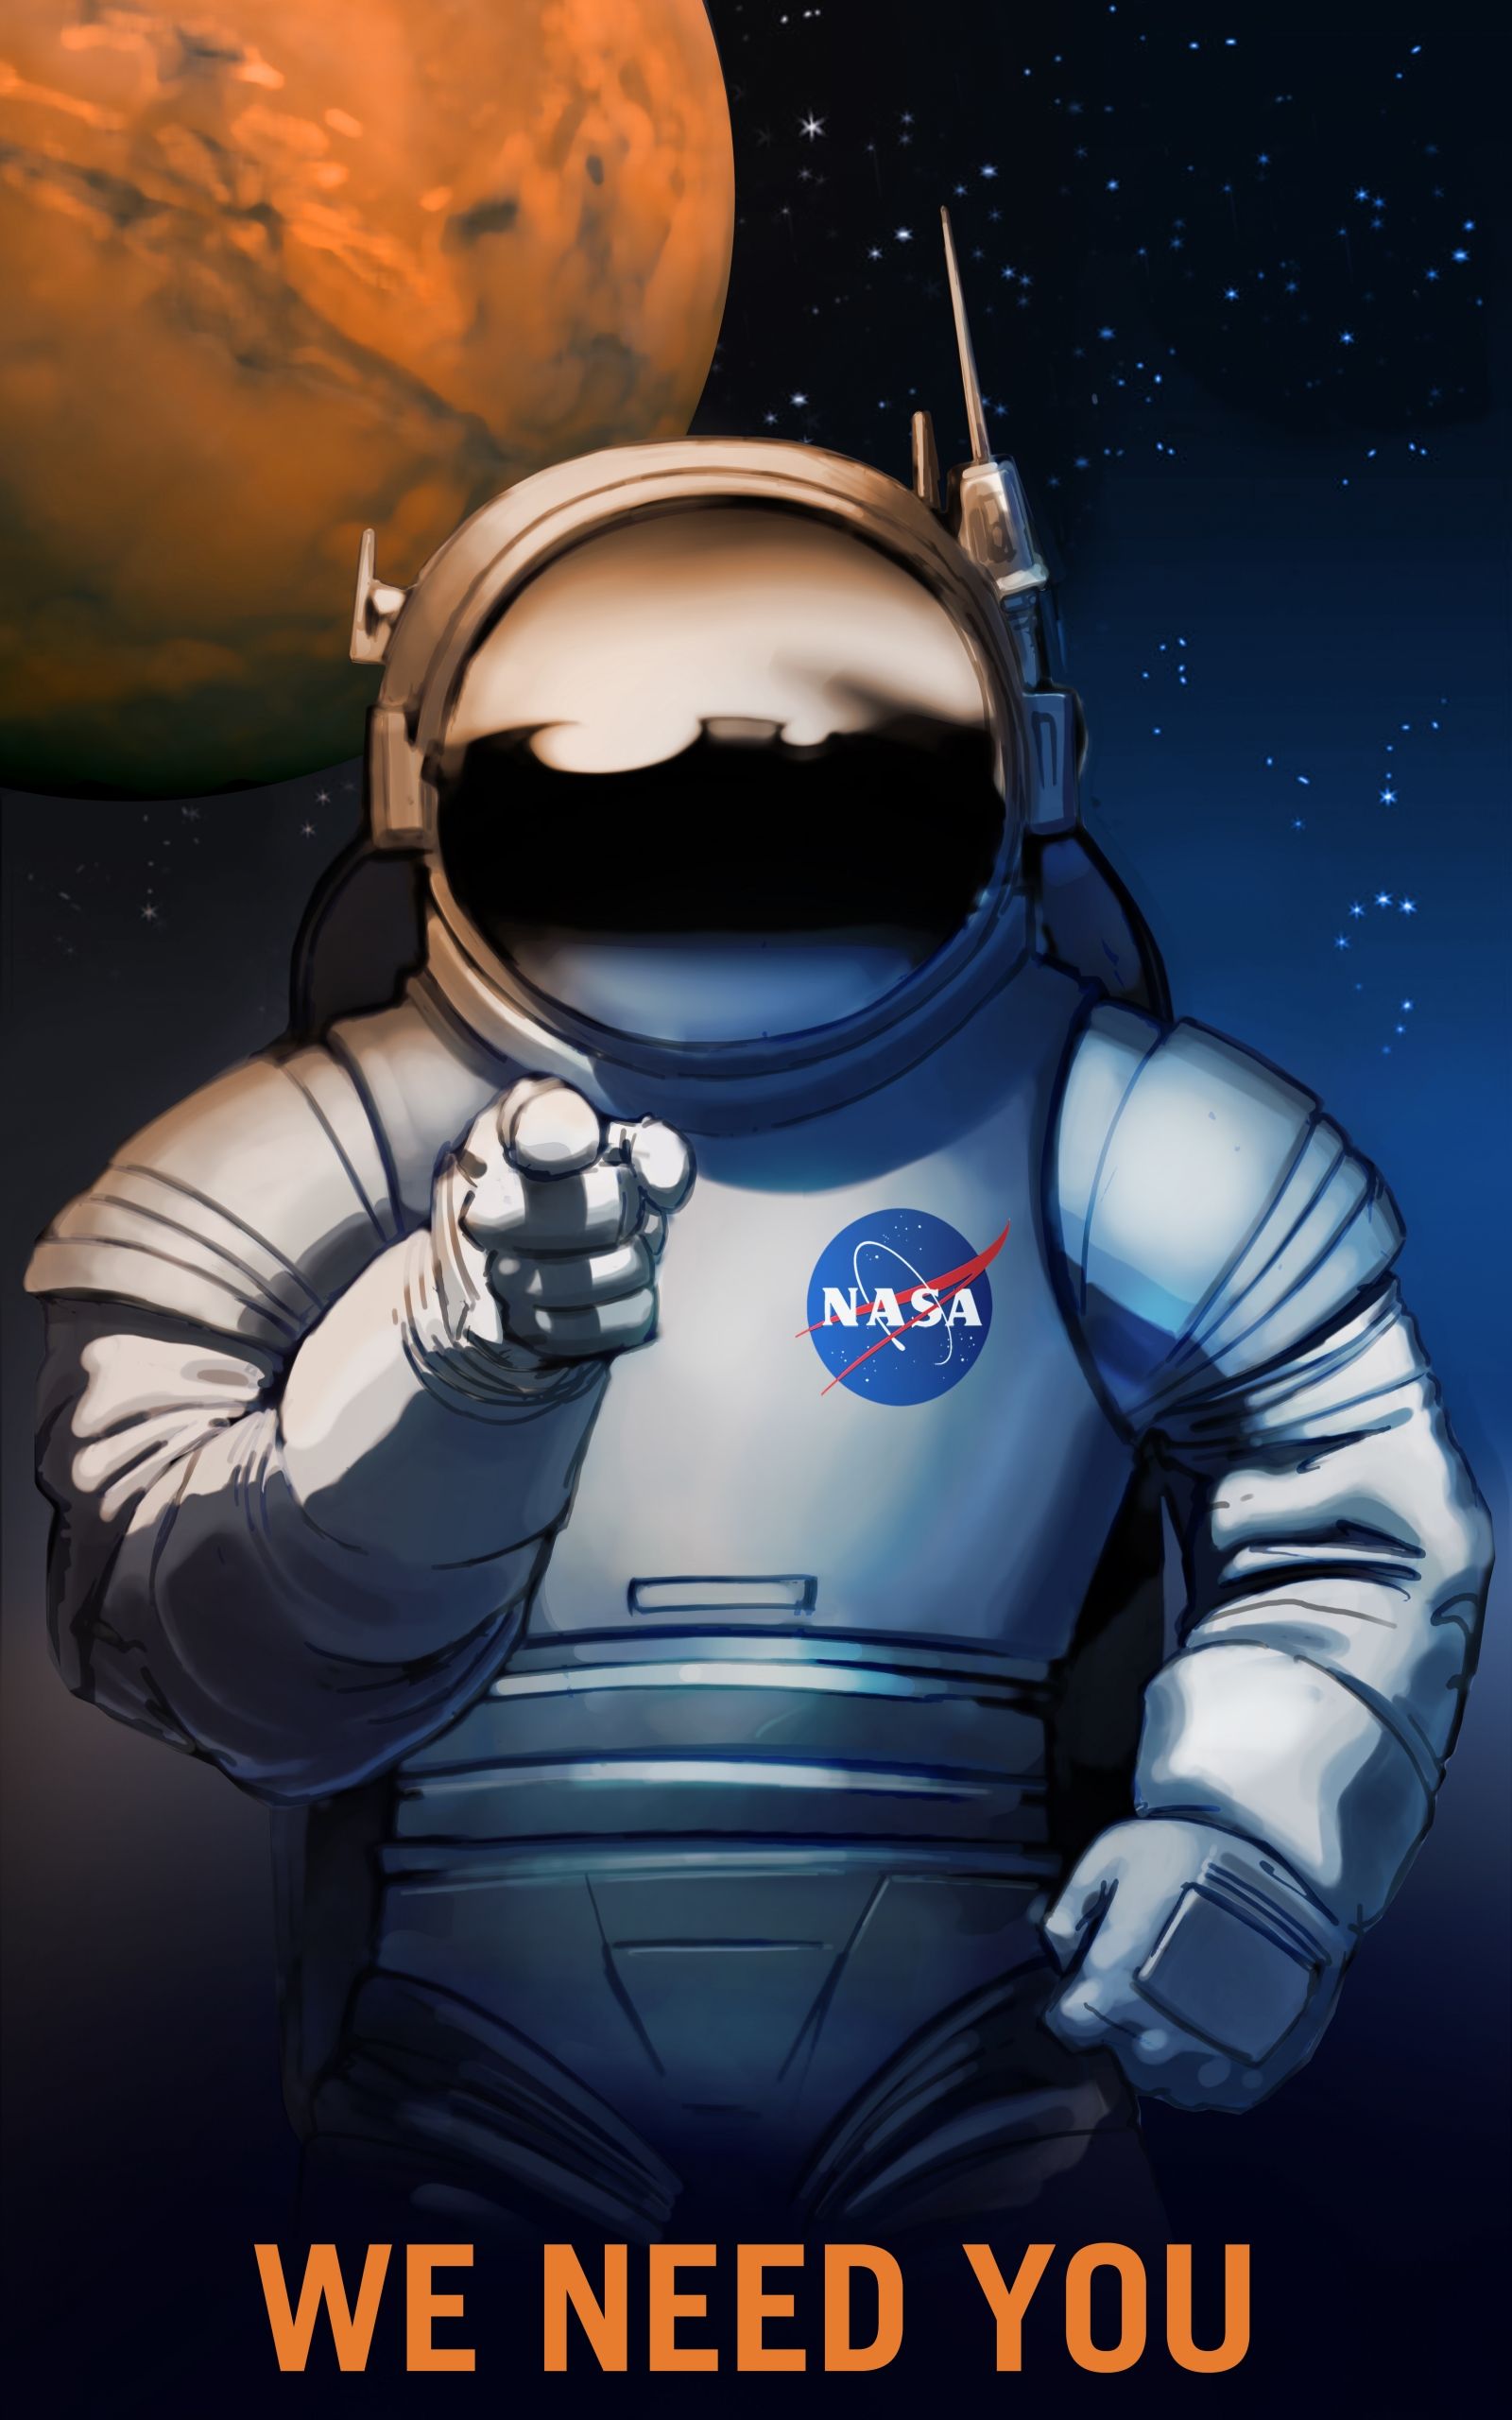 Nasa needs you